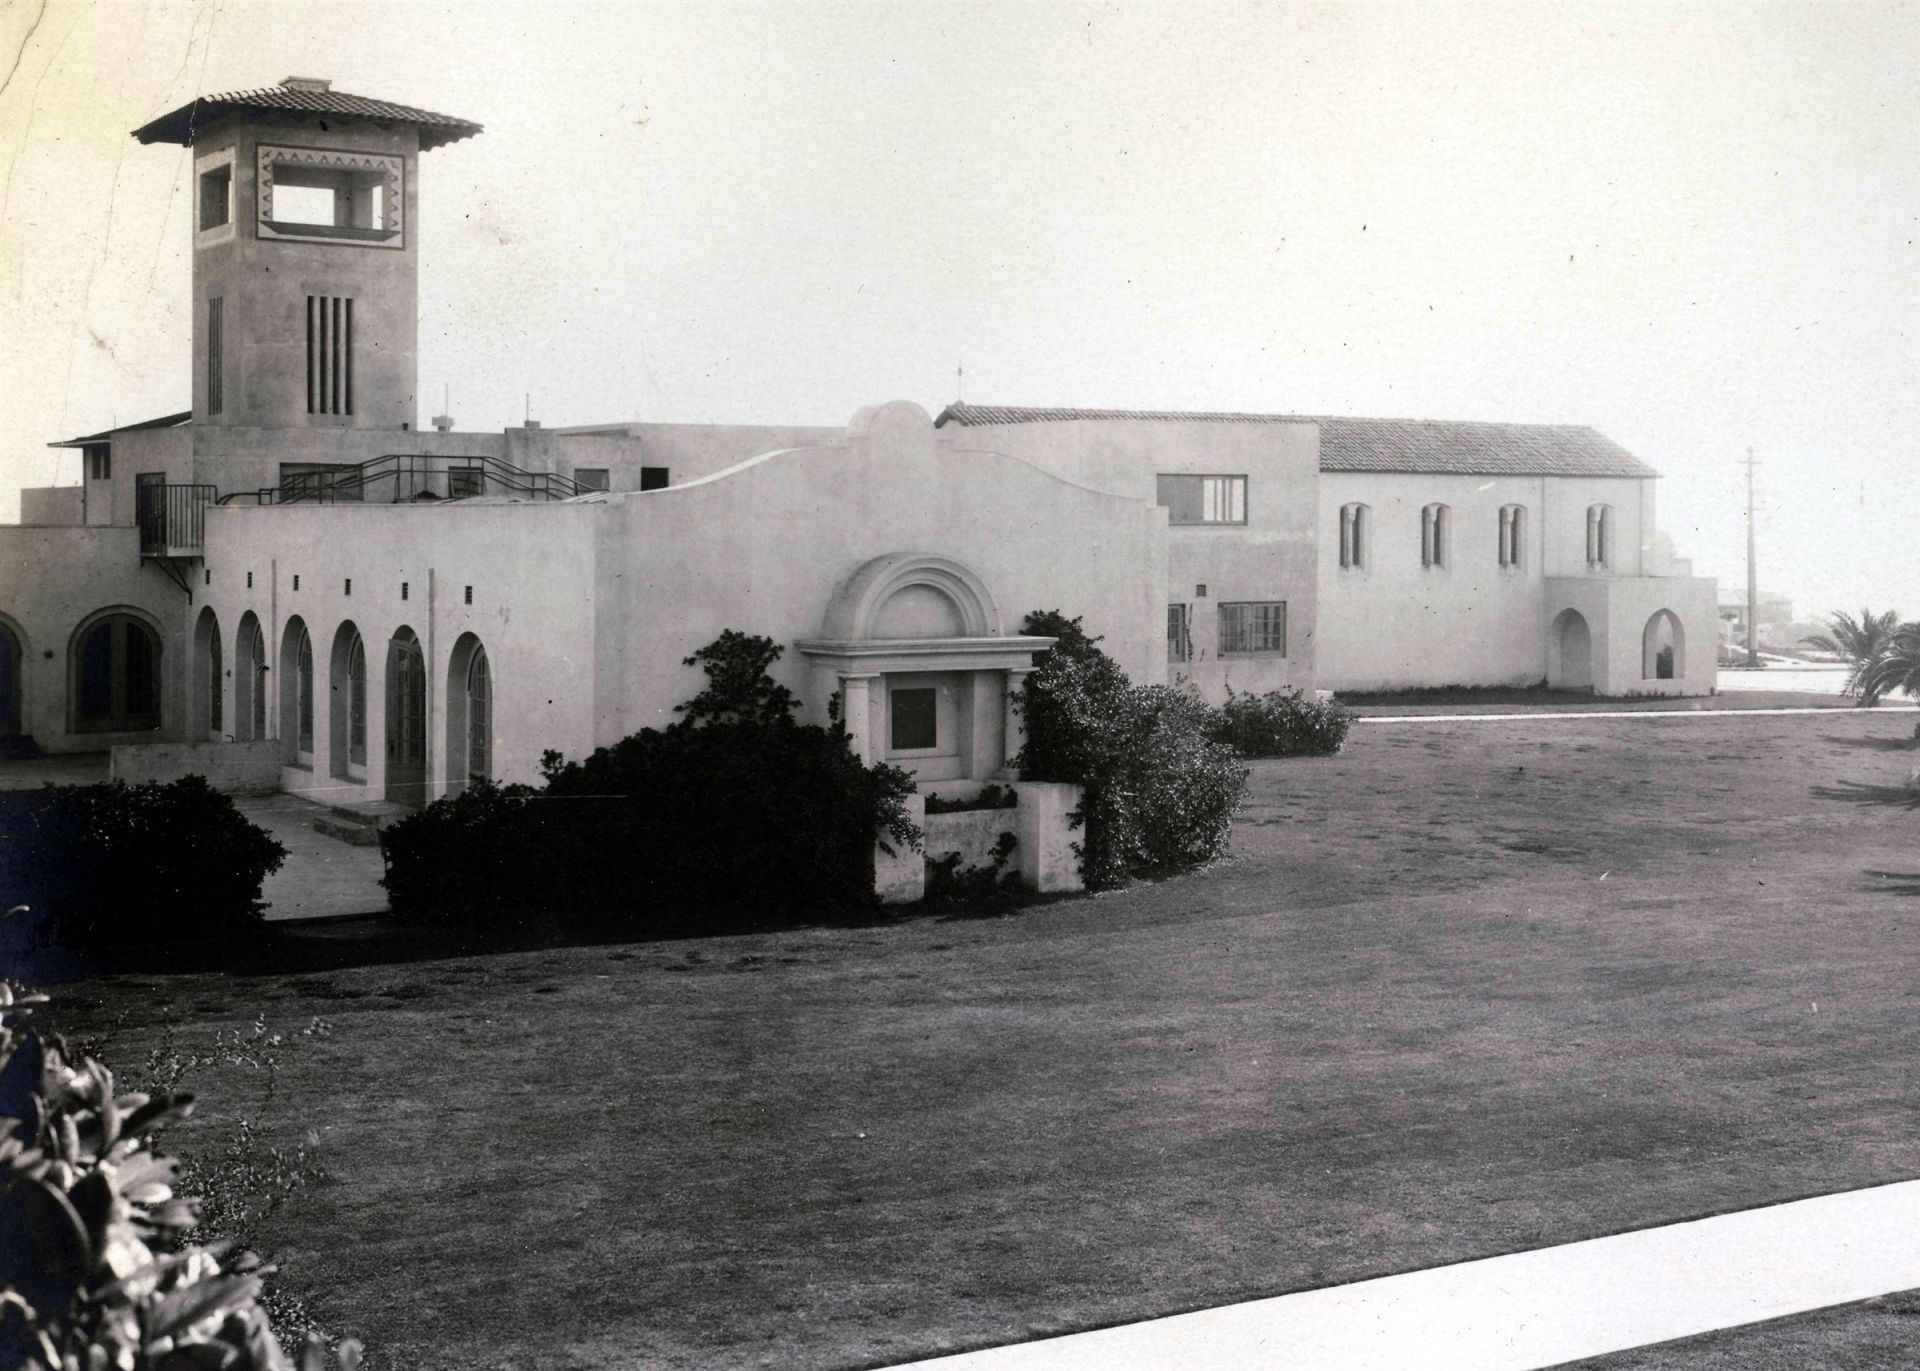 "The Scripps sisters ensured that the physical environment of The Bishop's School reflected modern and progressive ideas. They chose architect Irving Gill to build white concrete buildings that were fireproof and sanitary with nature providing decoration. Ellen Browning Scripps told a friend that ""one of the greatest delights of her life had been teaching."" She believed that schools should be ""an open door to knowledge."" For 108 years, The Bishop's School has remained committed to her educational ideals."